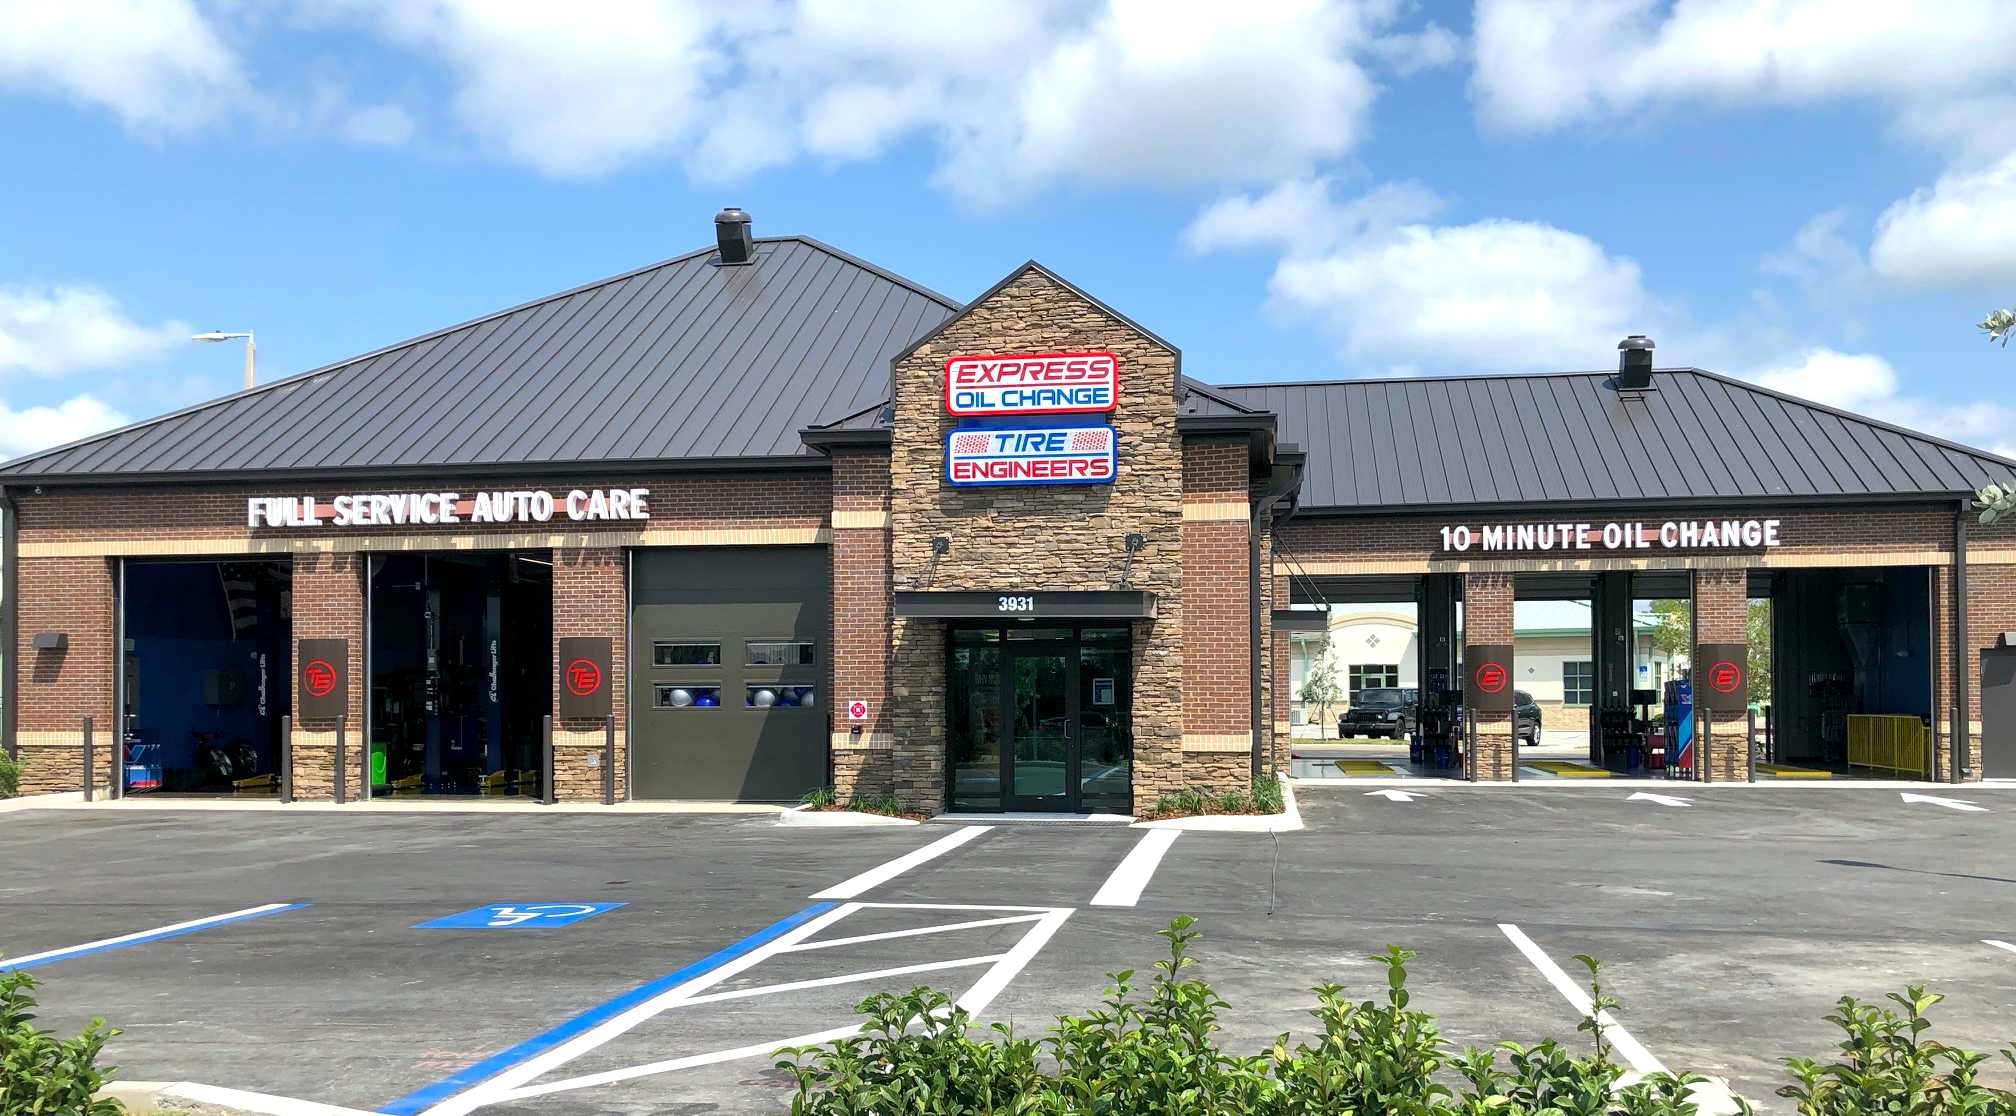 Express Oil Change & Tire Engineers Oldsmar, FL - Mobbly Bay store